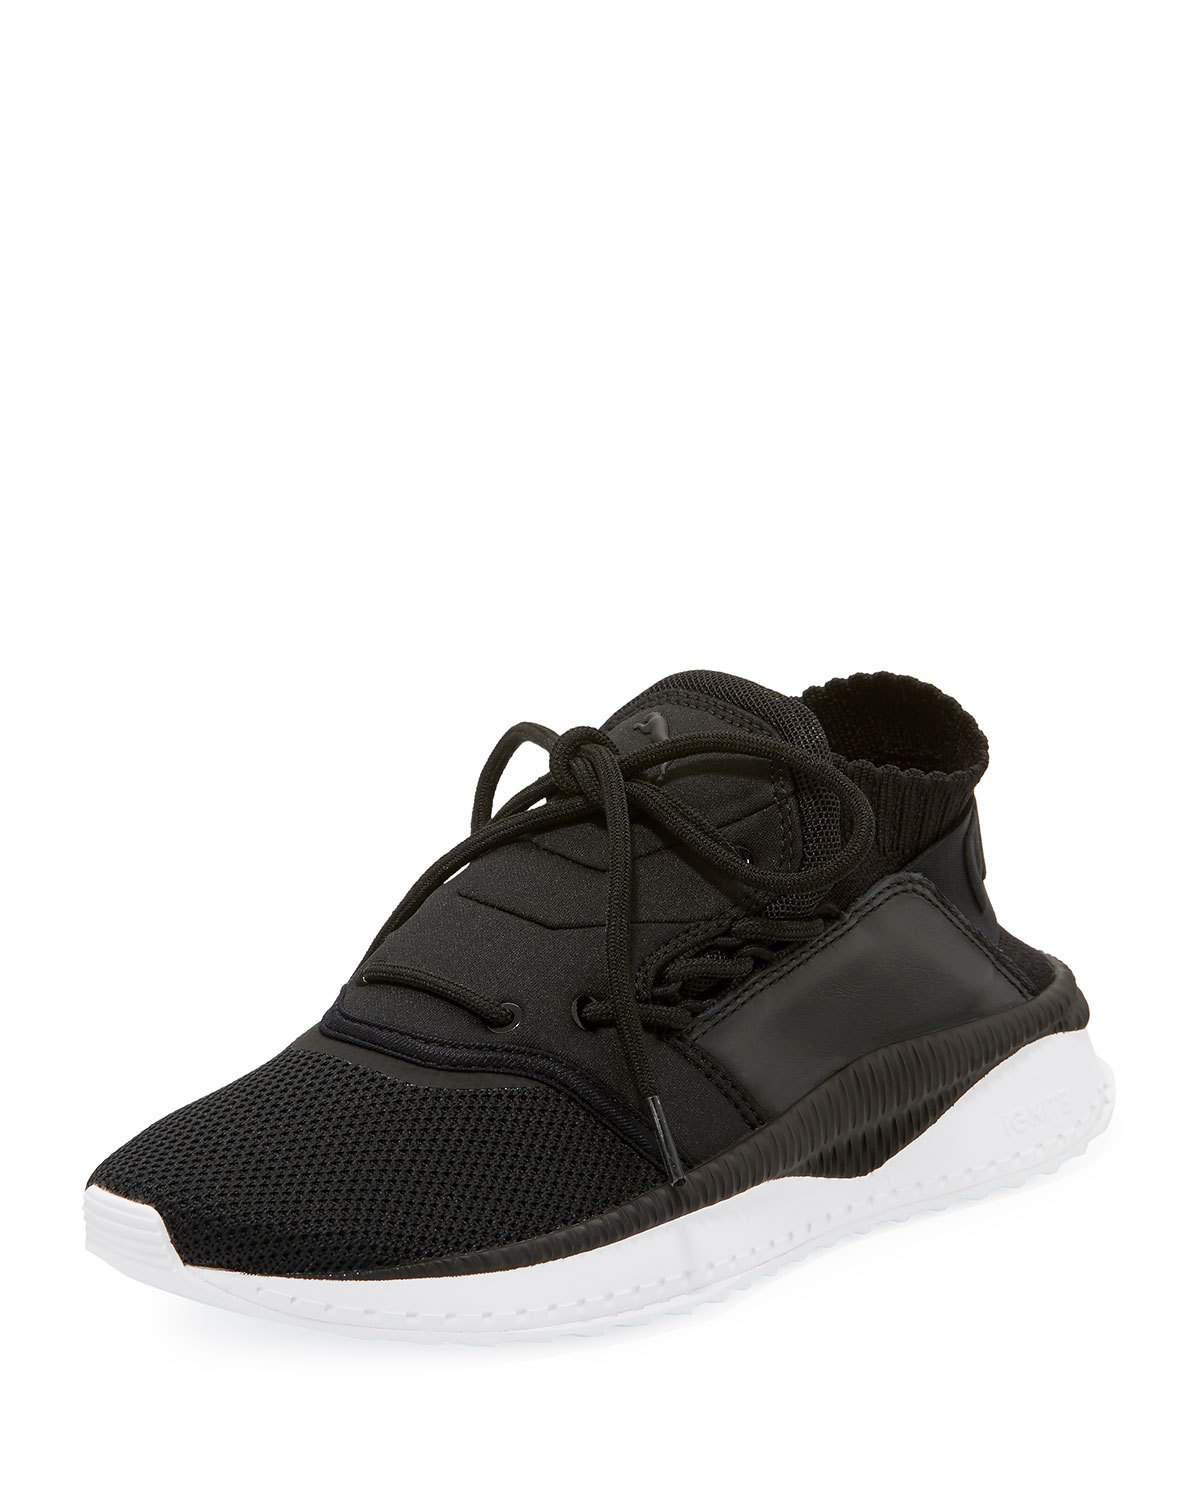 Lyst - PUMA Tsugi Shinsei Knit Trainer Sneakers in Black for Men b6751029a